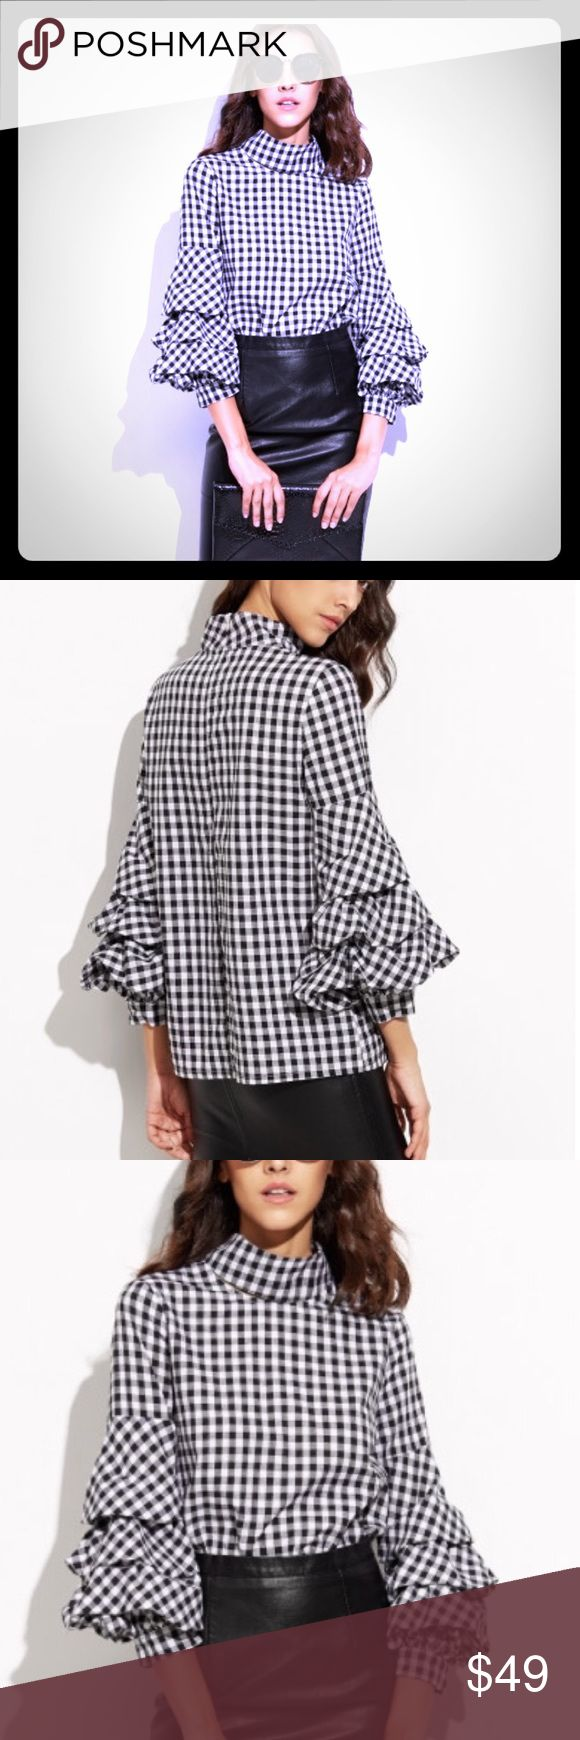 ⚜️Sophisticated & Sexy plaid Top Gorgeous Hot Fashion Black Gingham Cutout High Neck Billow Sleeve Top - BRAND NEW! Tops Blouses